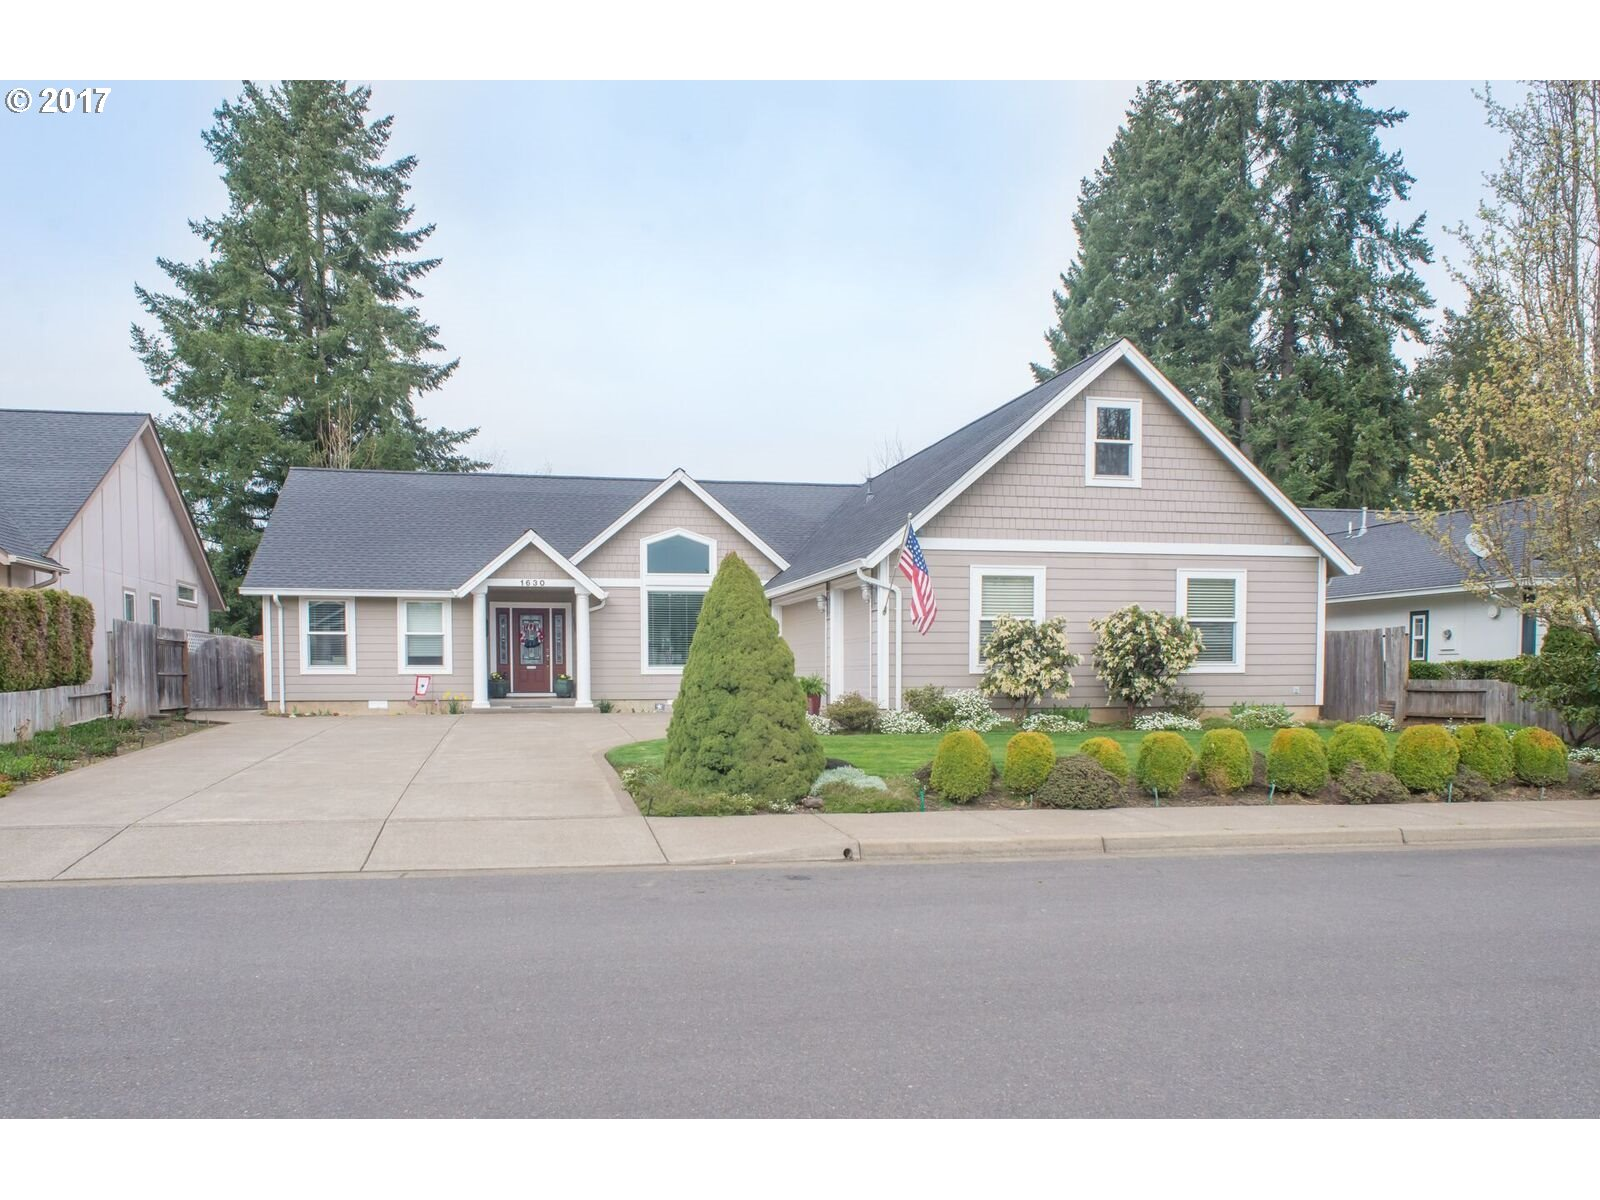 1630 FAIRVIEW PL, Cottage Grove, OR 97424